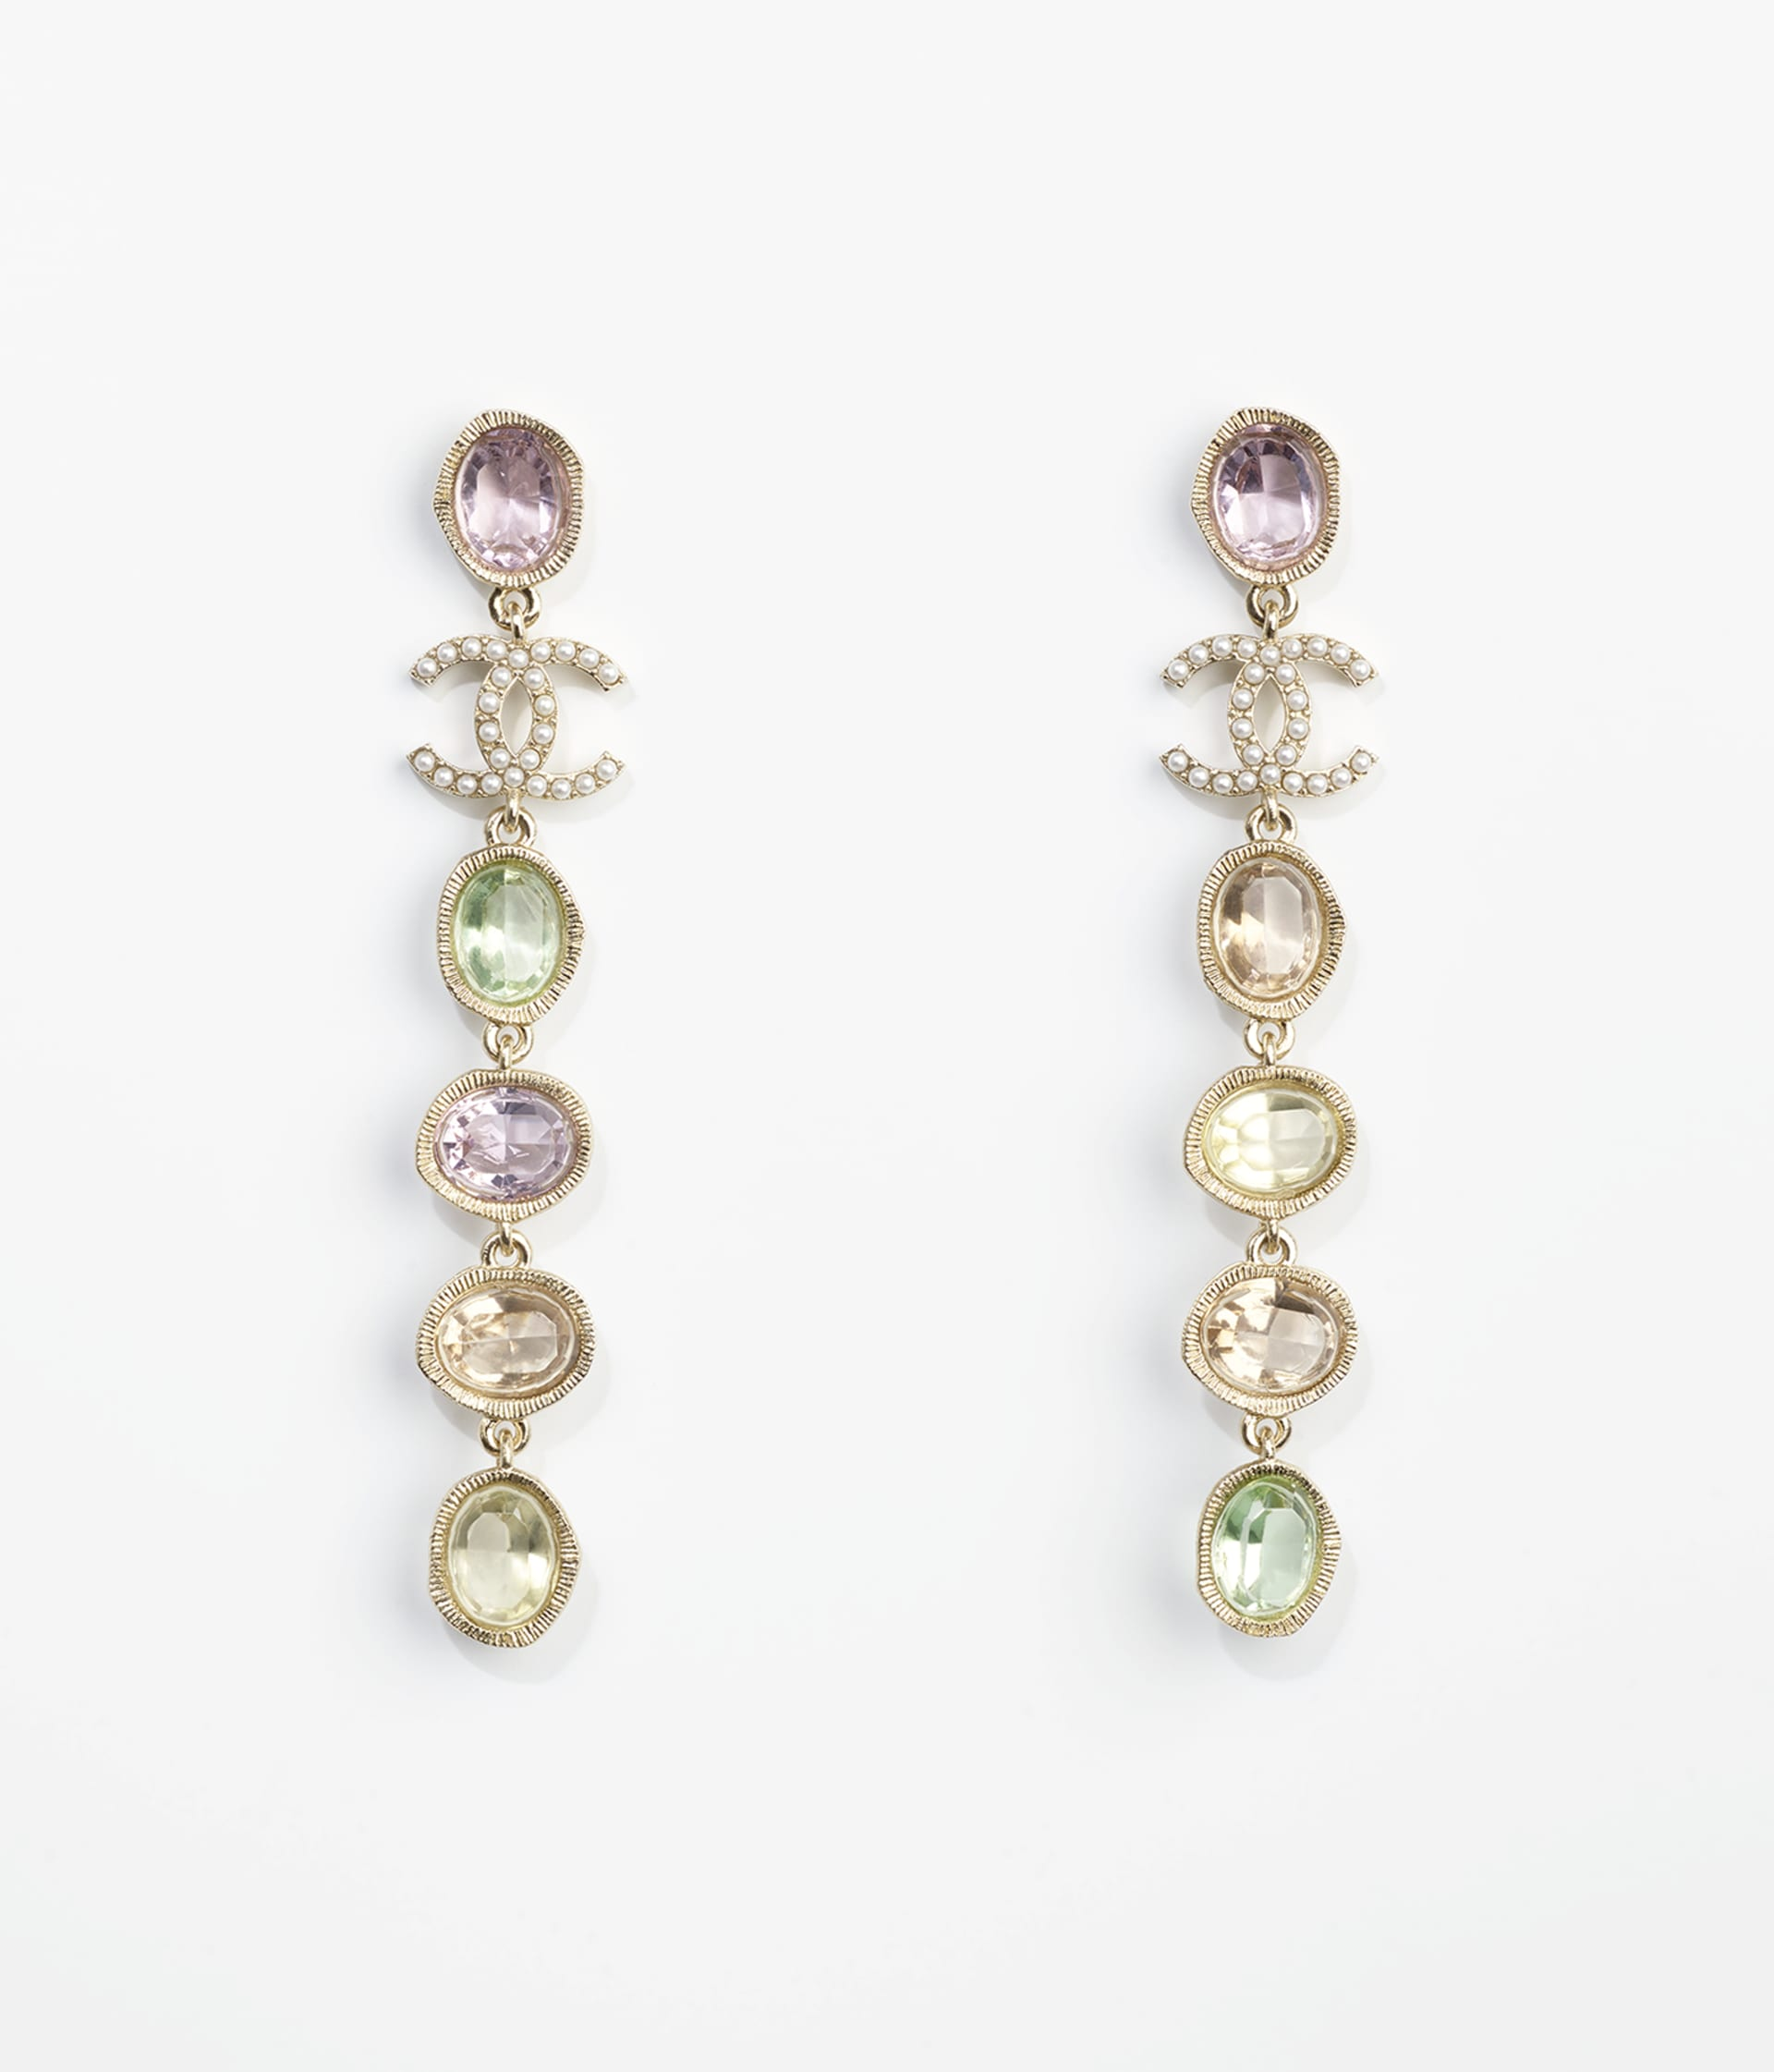 image 1 - Earrings - Metal, Glass Pearls & Strass - Gold, Multicolor & Pearly White